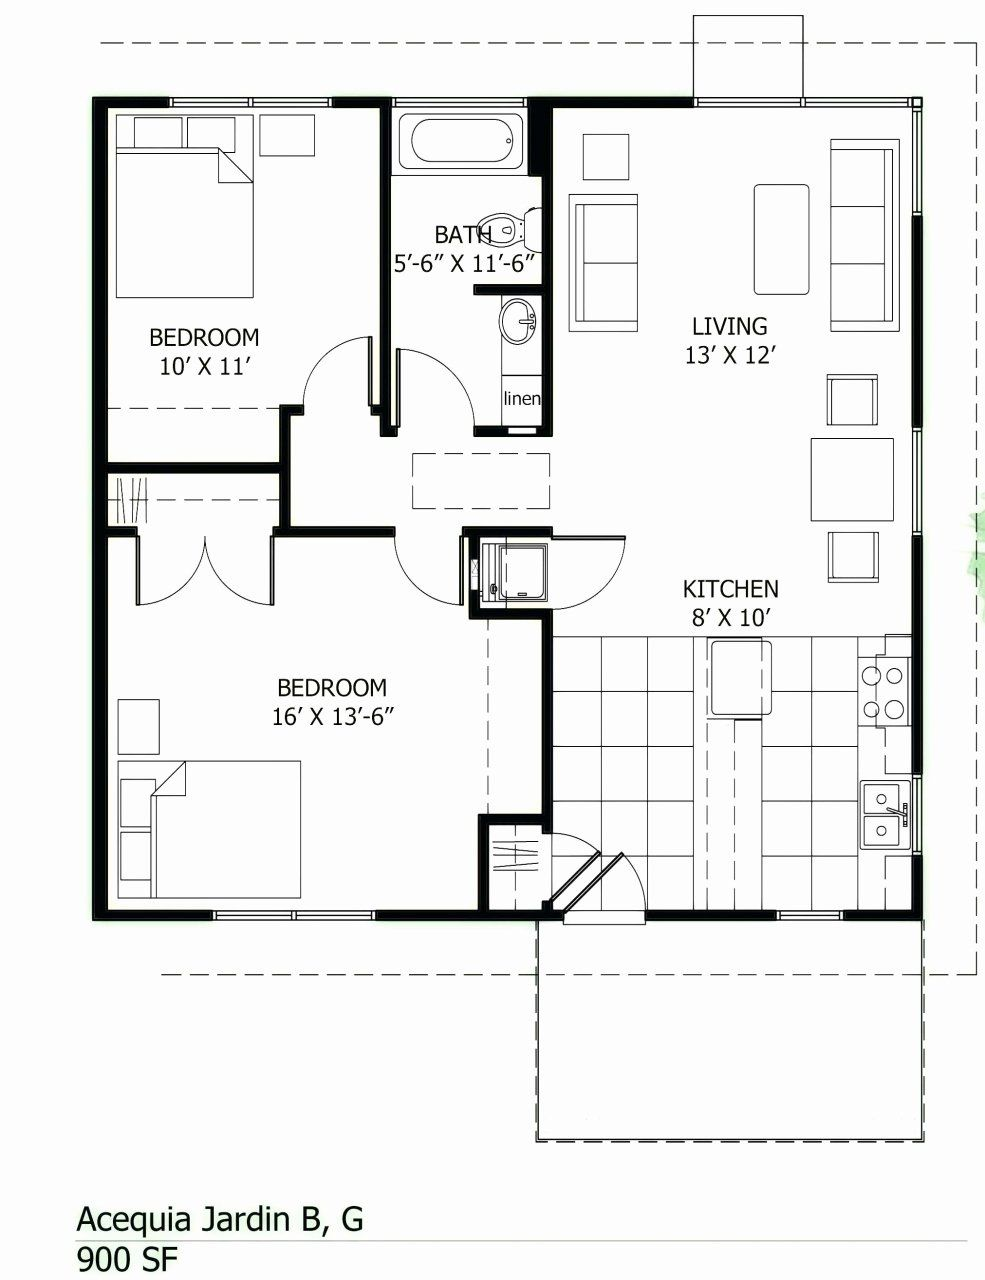 1500 Sf House Plans Awesome 4 Bedroom House For Sale In 2020 20x30 House Plans House Plans Modern House Plans